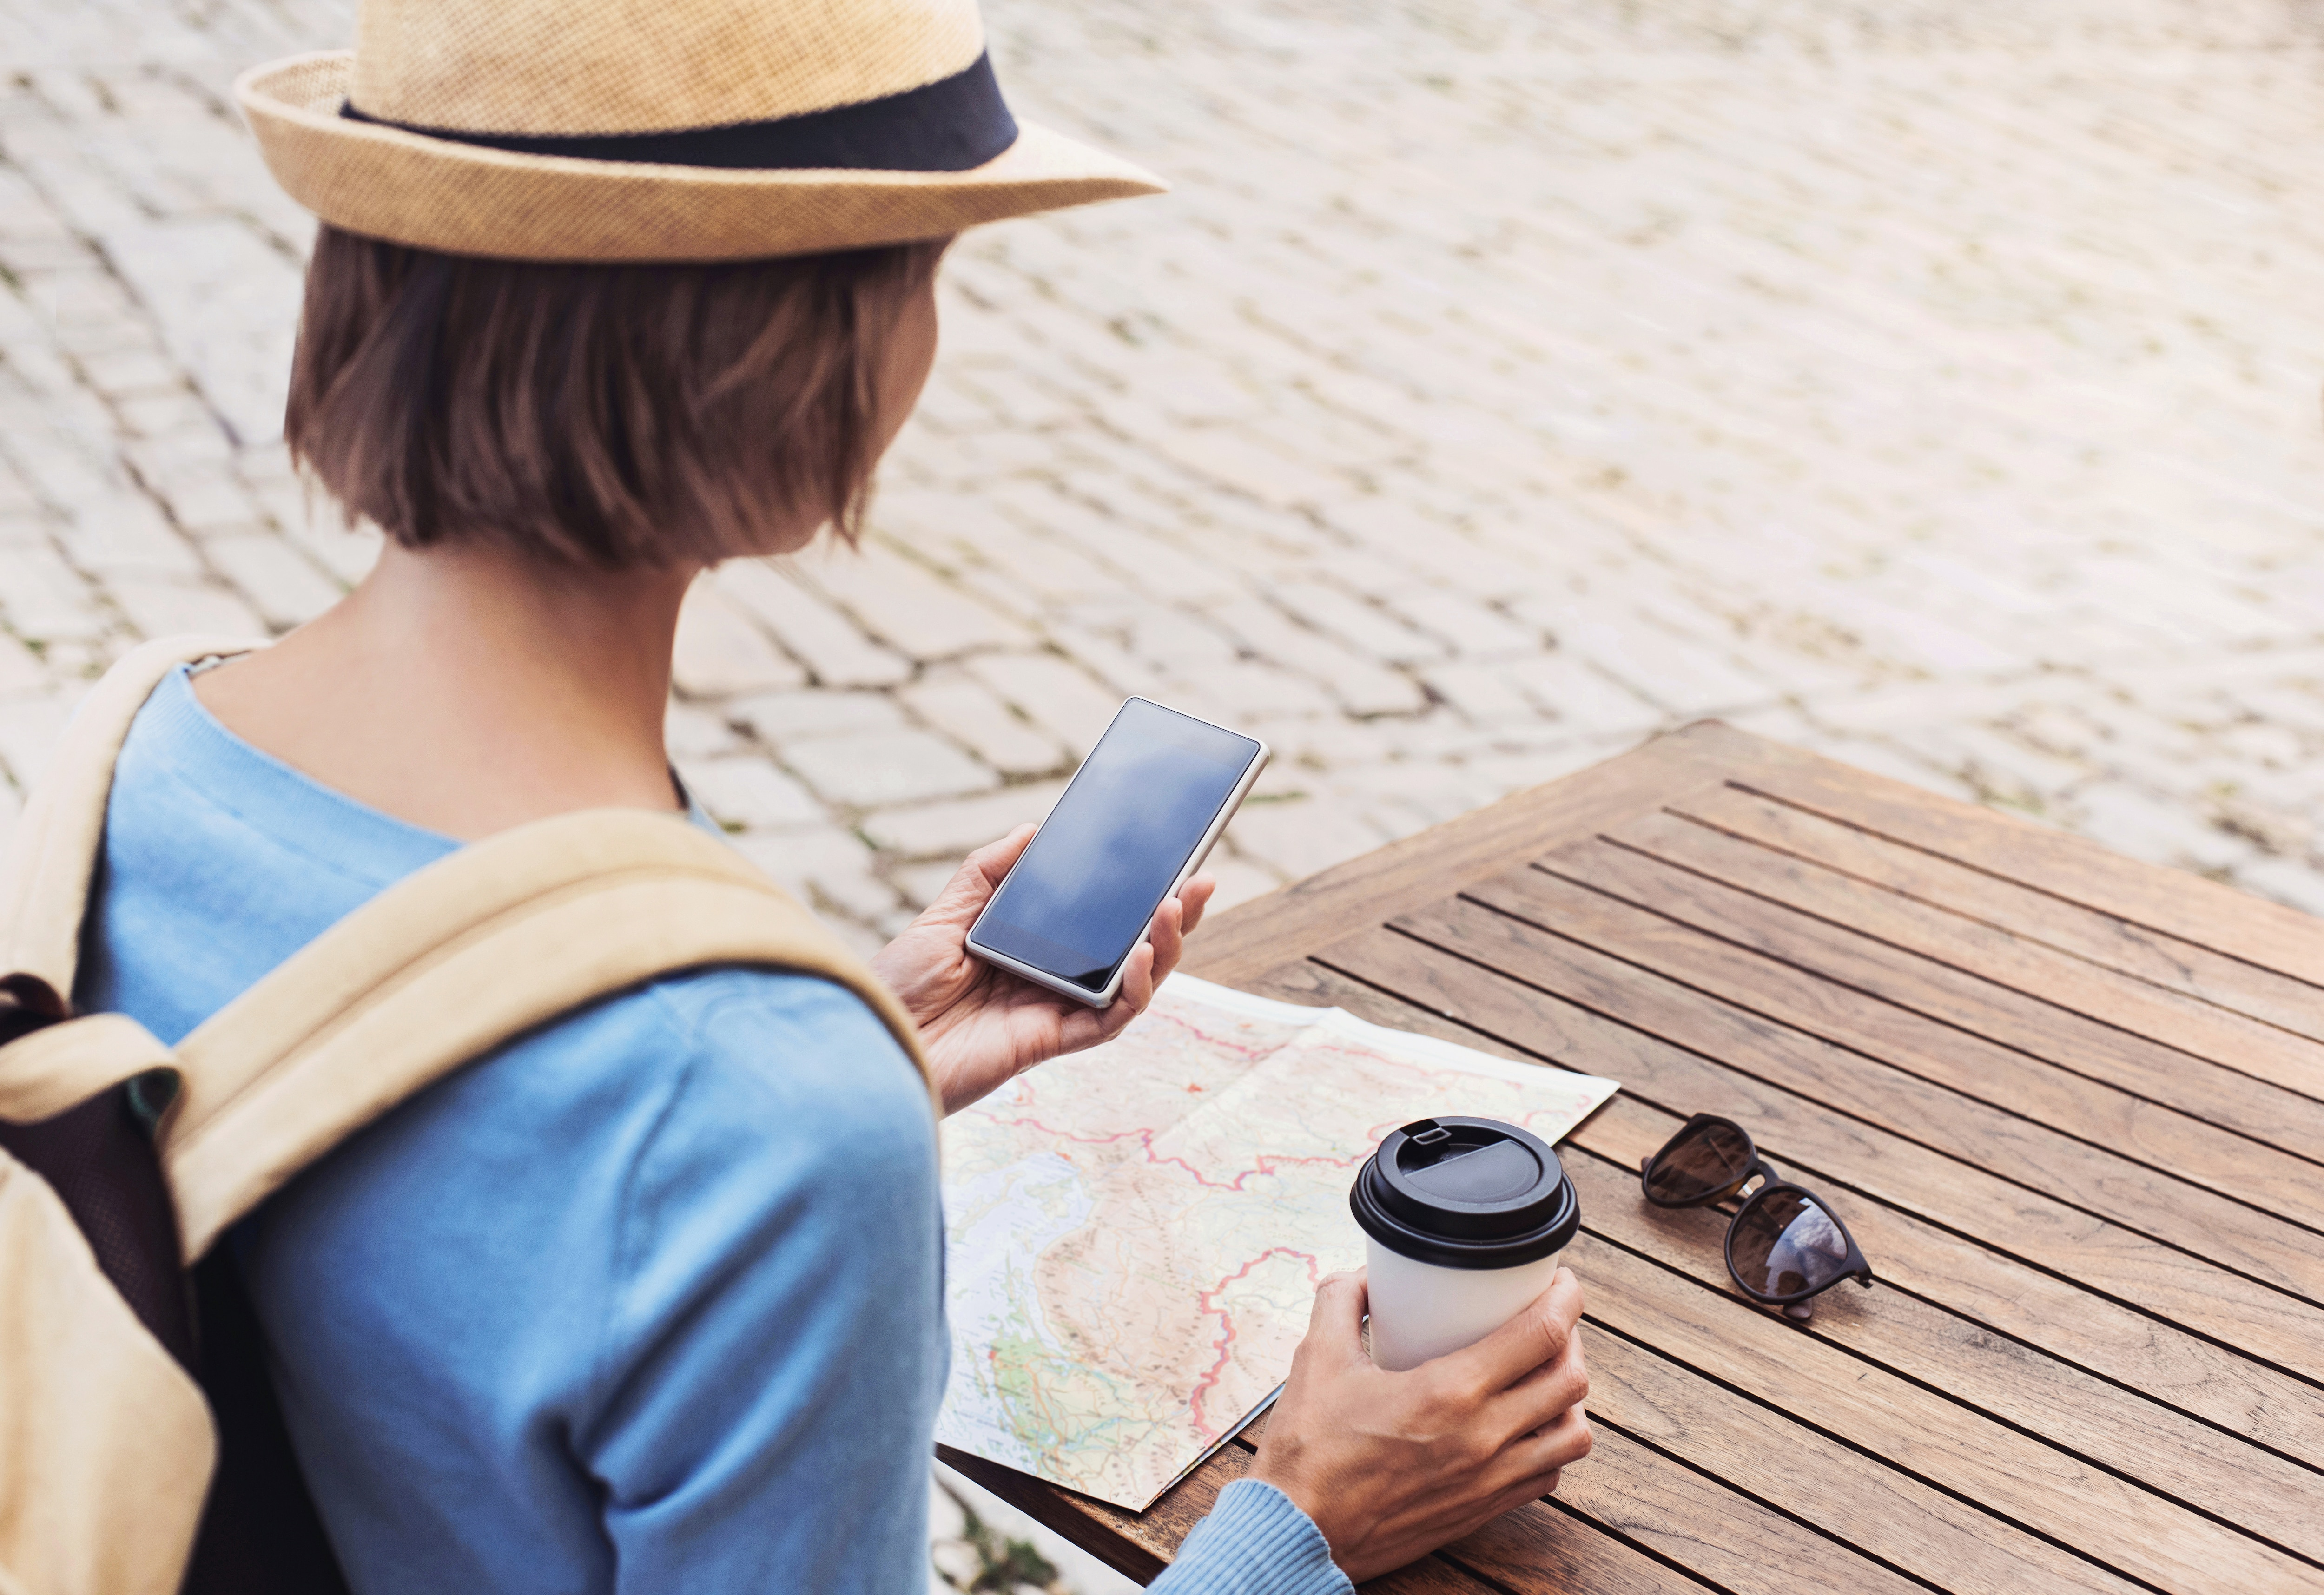 A woman using her phone apps to get around on vacation.